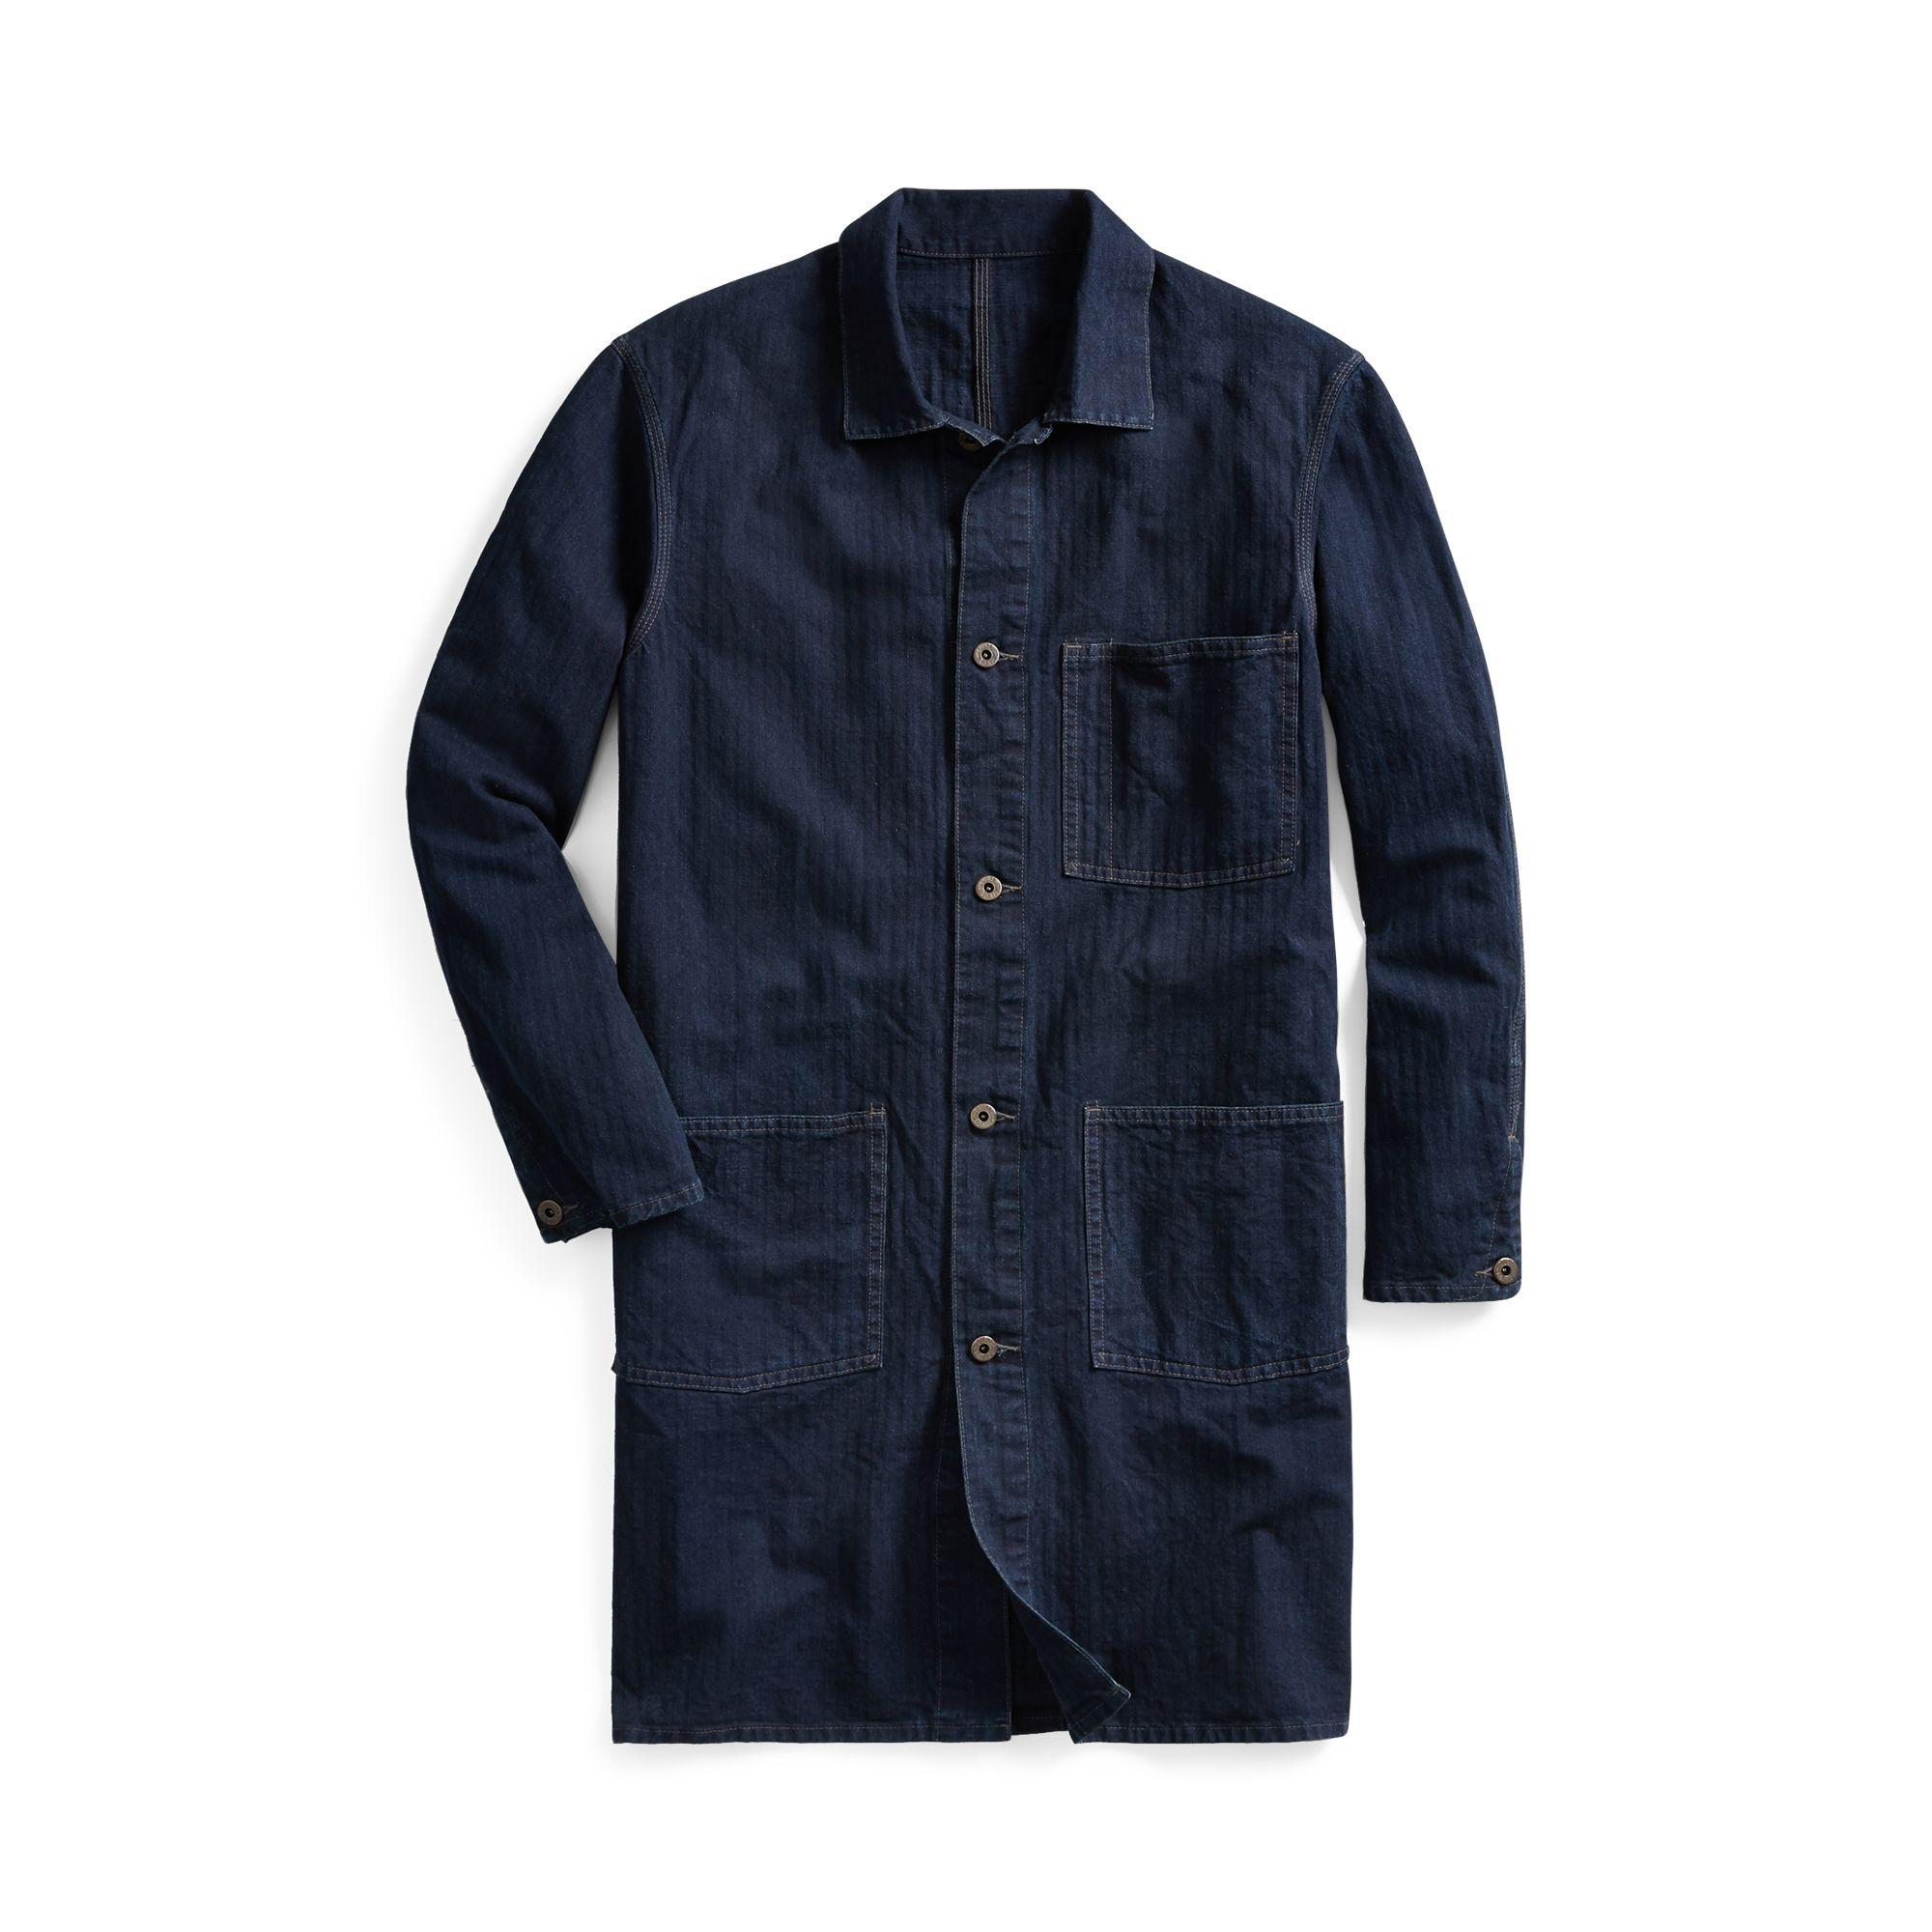 3c5c691e05 Lyst - RRL Indigo Cotton-linen Shop Coat in Blue for Men